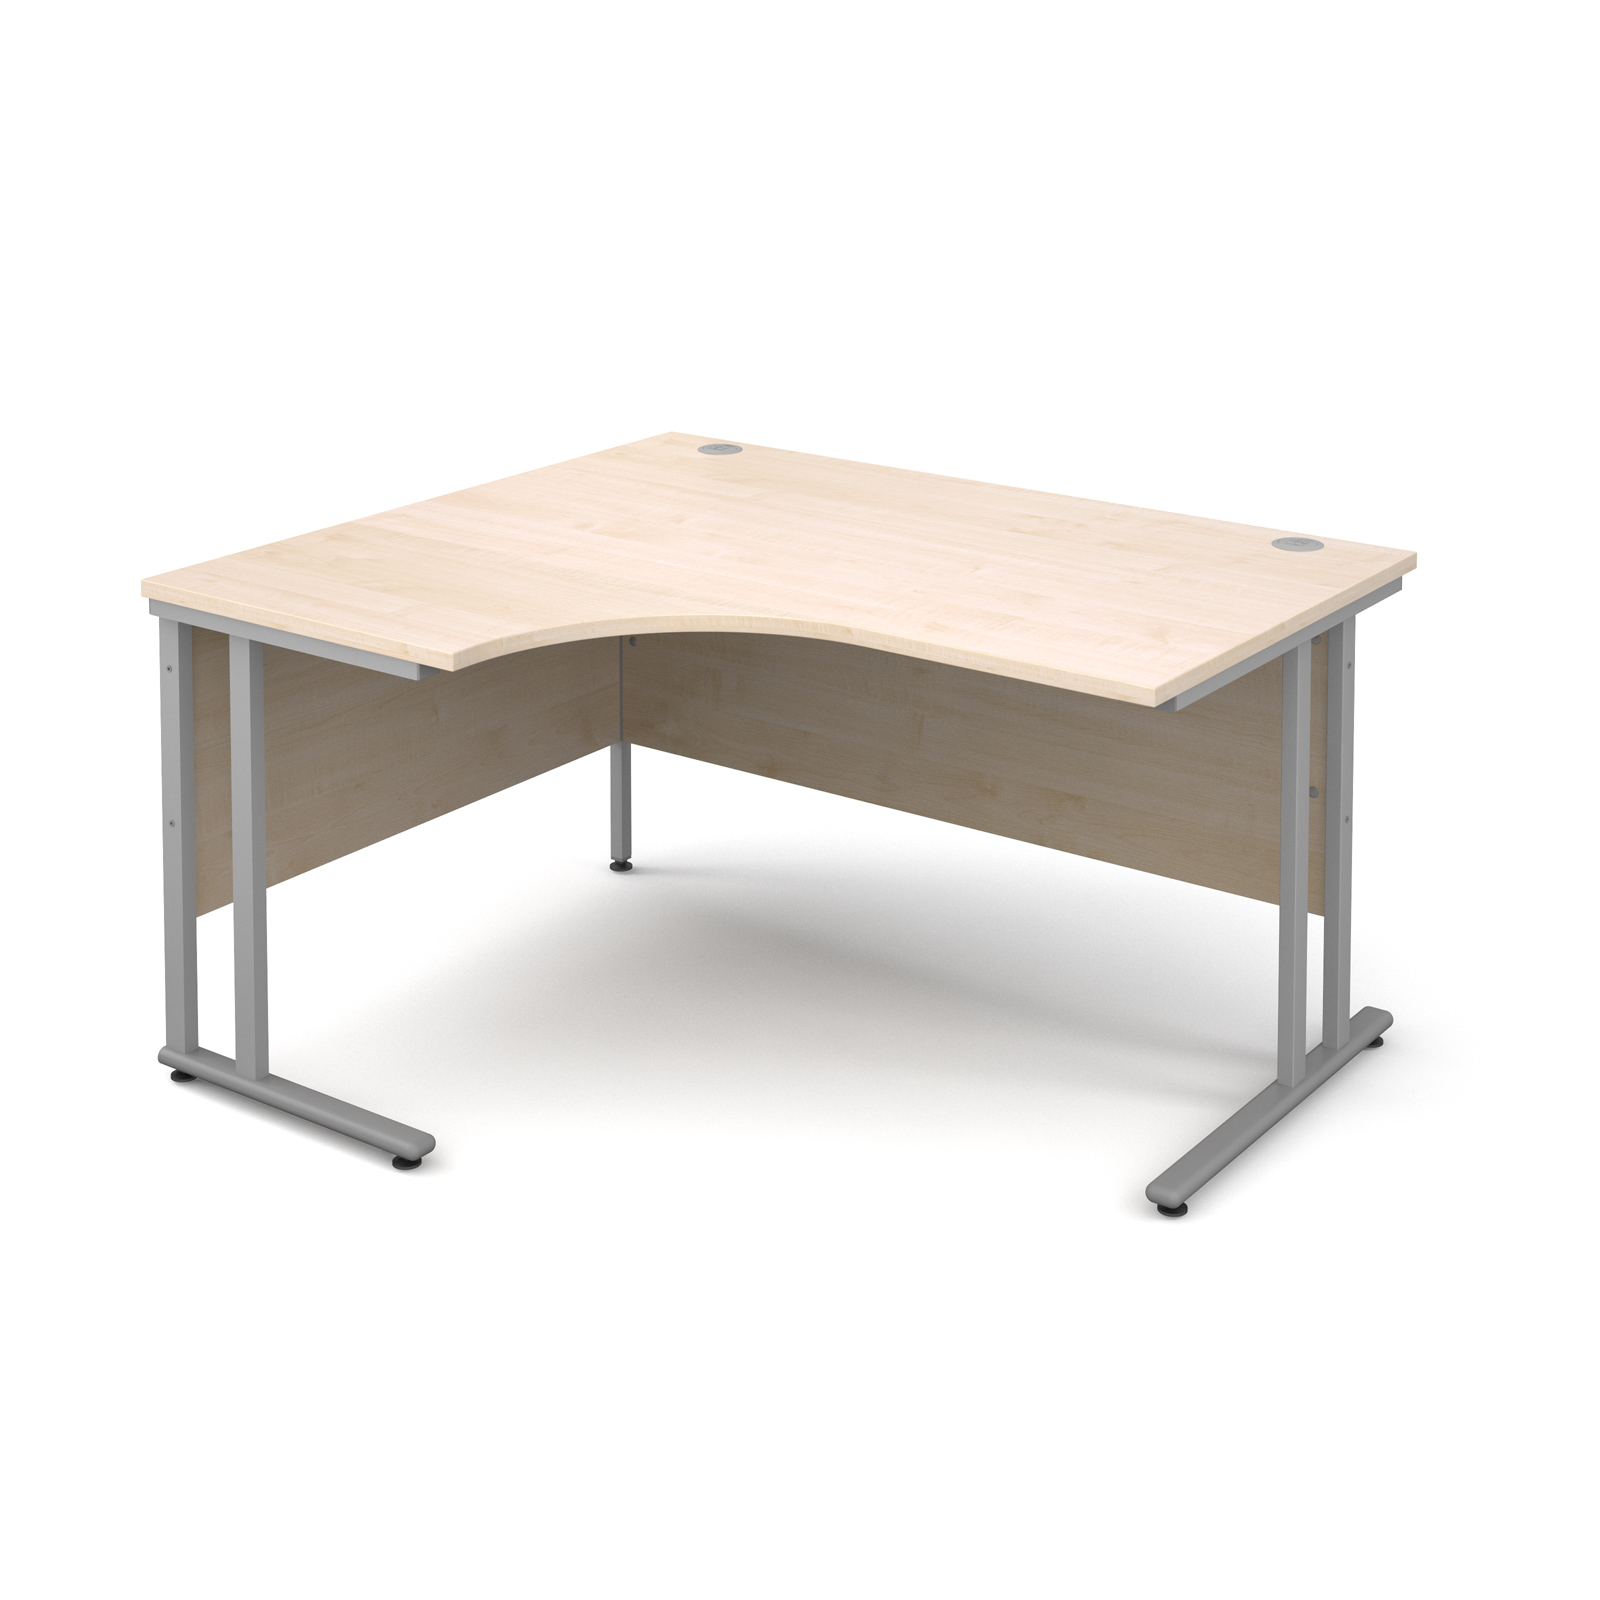 Dams Maestro 25 SL Maple Desk | Corner